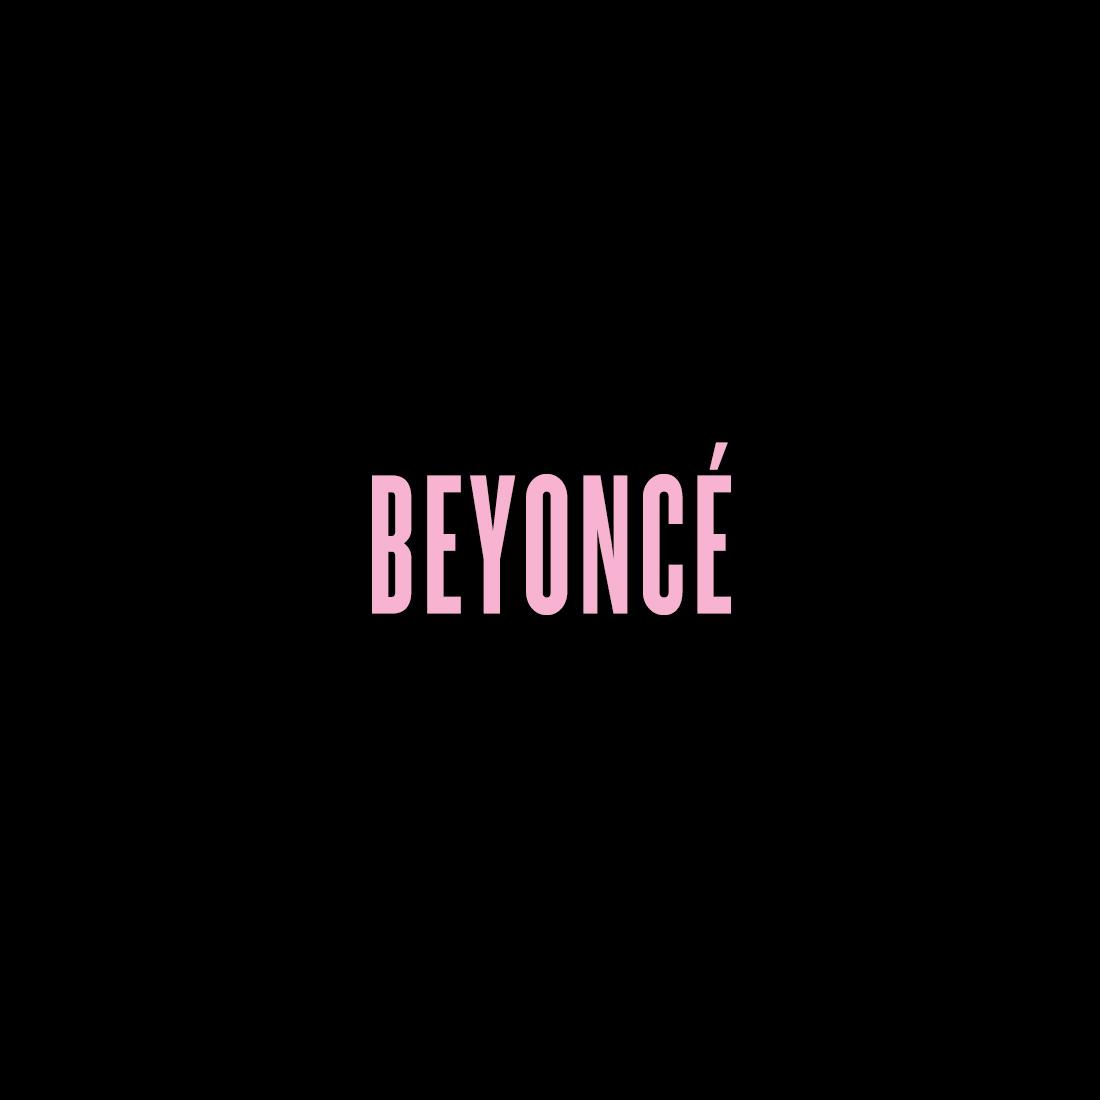 Beyonce: The Platinum Edition Box Set Announced